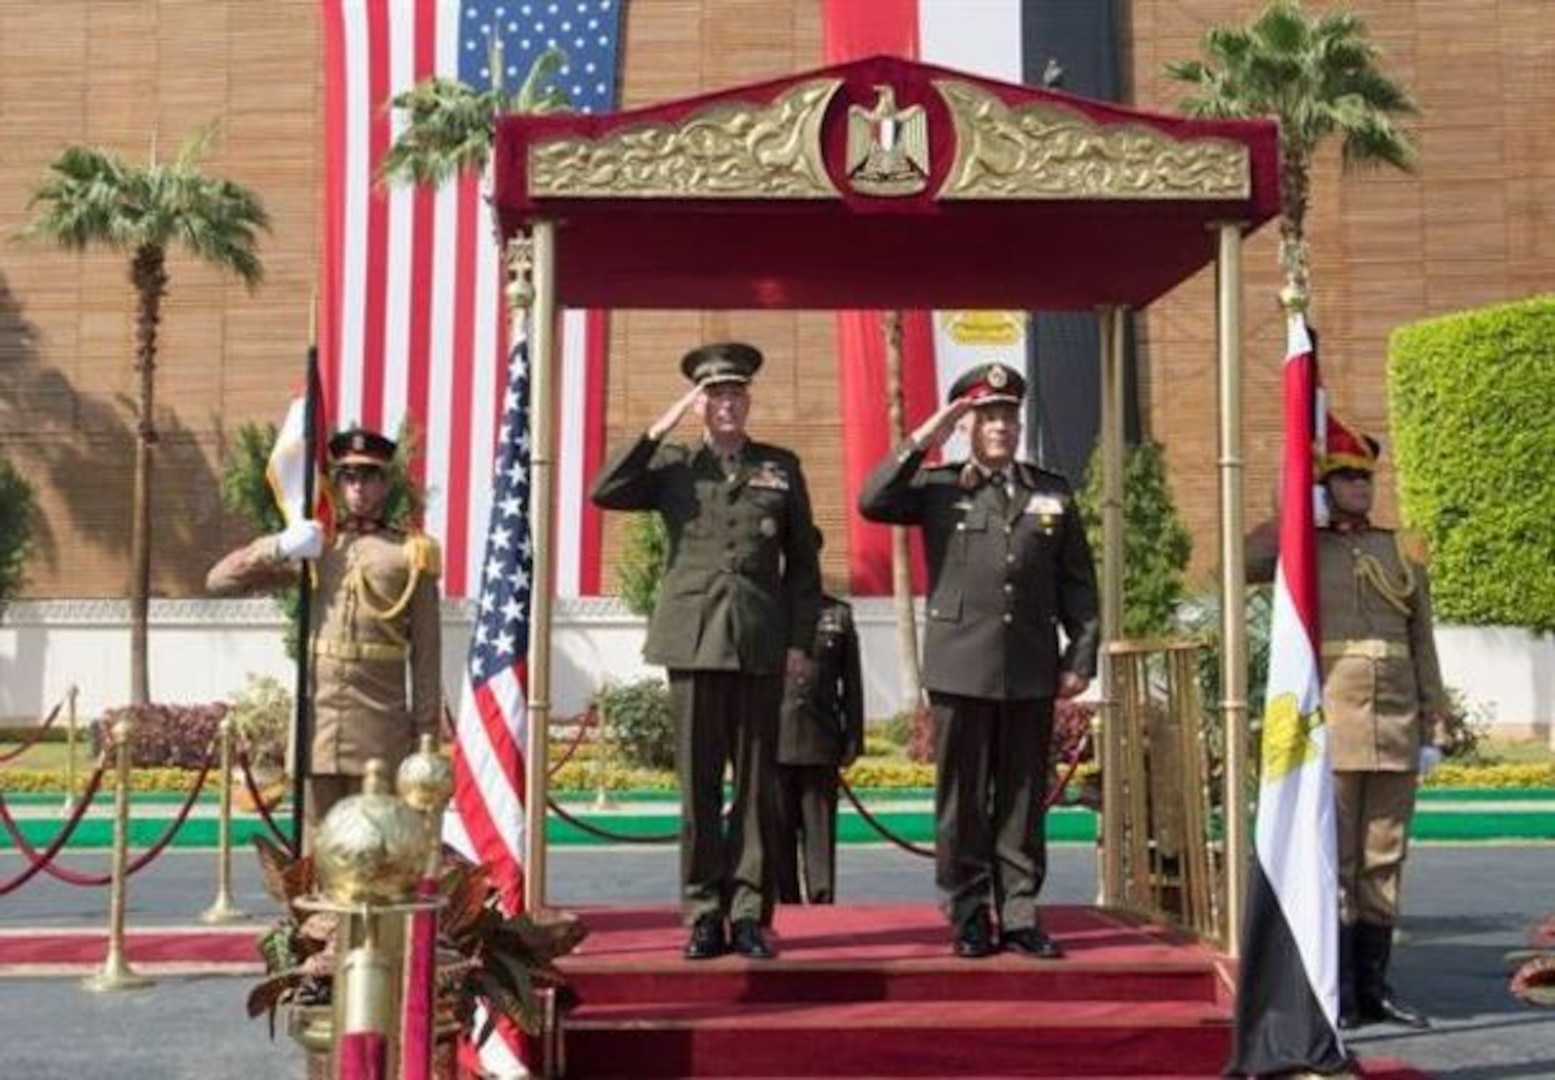 Marine Corps Gen. Joseph F. Dunford Jr., chairman of the Joint Chiefs of Staff, and Egyptian Chief of the Armed Forces Lt. Gen. Mahmoud Hegazy, right, render honors during an honor cordon at the Egyptian Ministry of Defense in Cairo, Feb. 20, 2016. (DoD photo by D. Myles Cullen)